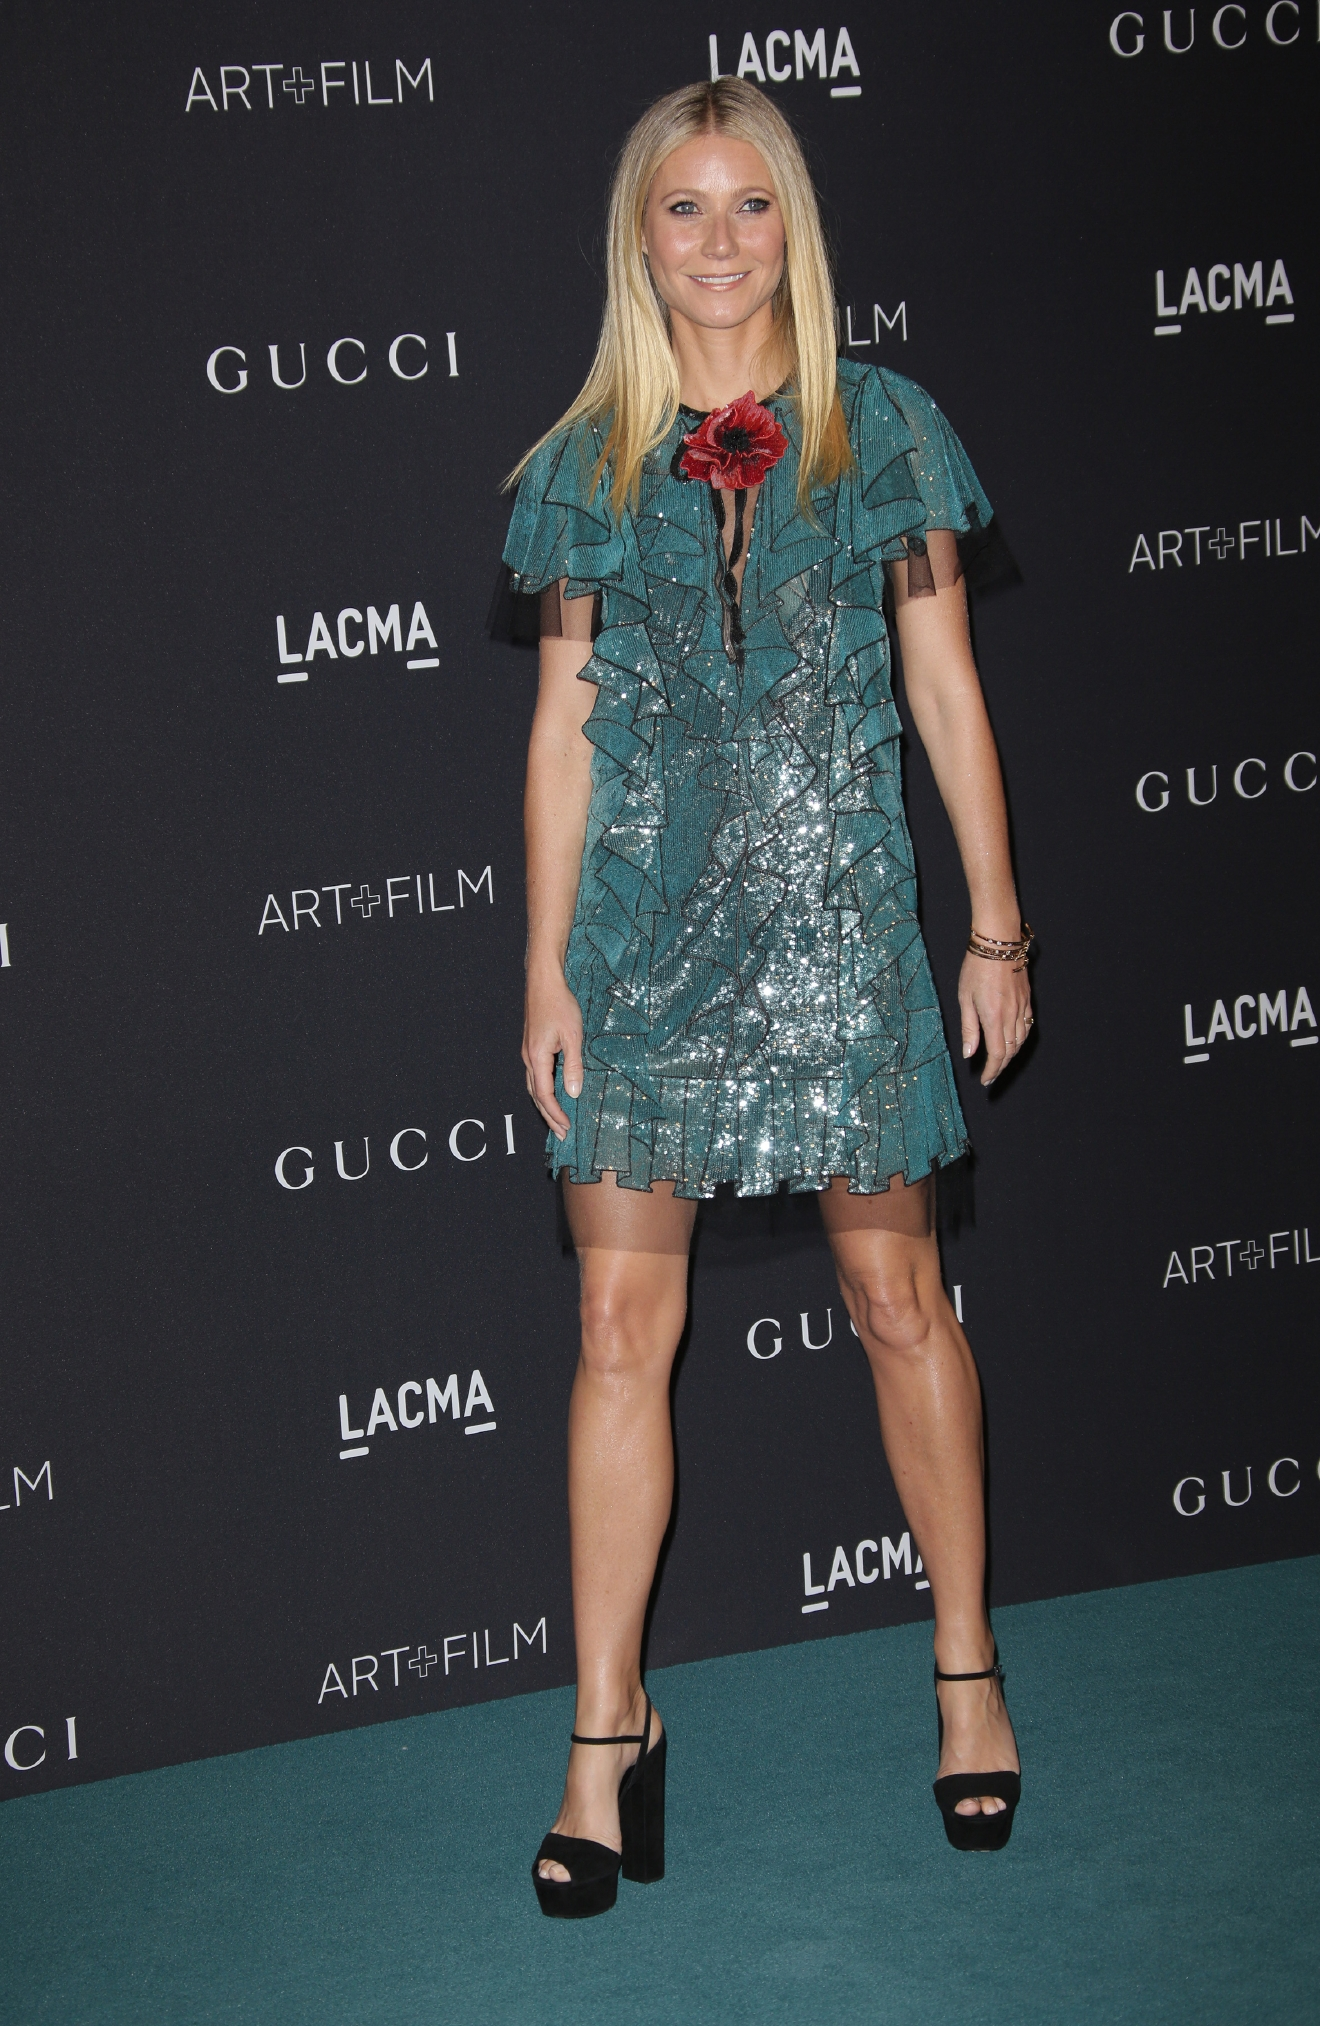 LACMA 2015 Art+Film Gala honouring James Turrell And Alejandro G Inarritu, presented by Gucci                                                                      Featuring: Gwyneth Paltrow                                   Where: Los Angeles, California, United States                                   When: 09 Nov 2015                                   Credit: FayesVision/WENN.com